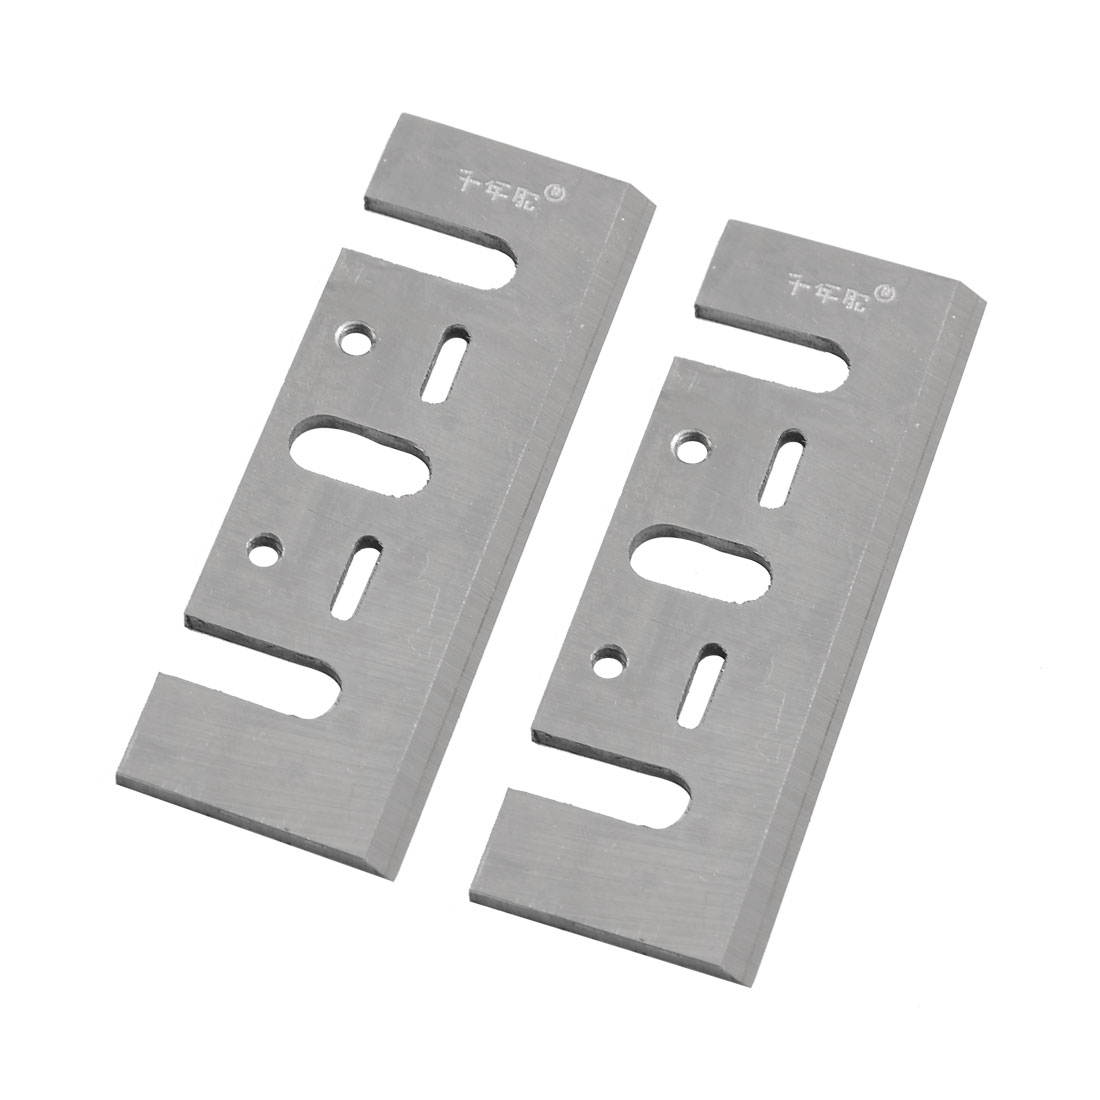 2 Pcs Silver Tone Electric Planer Blades for Makita 1900B